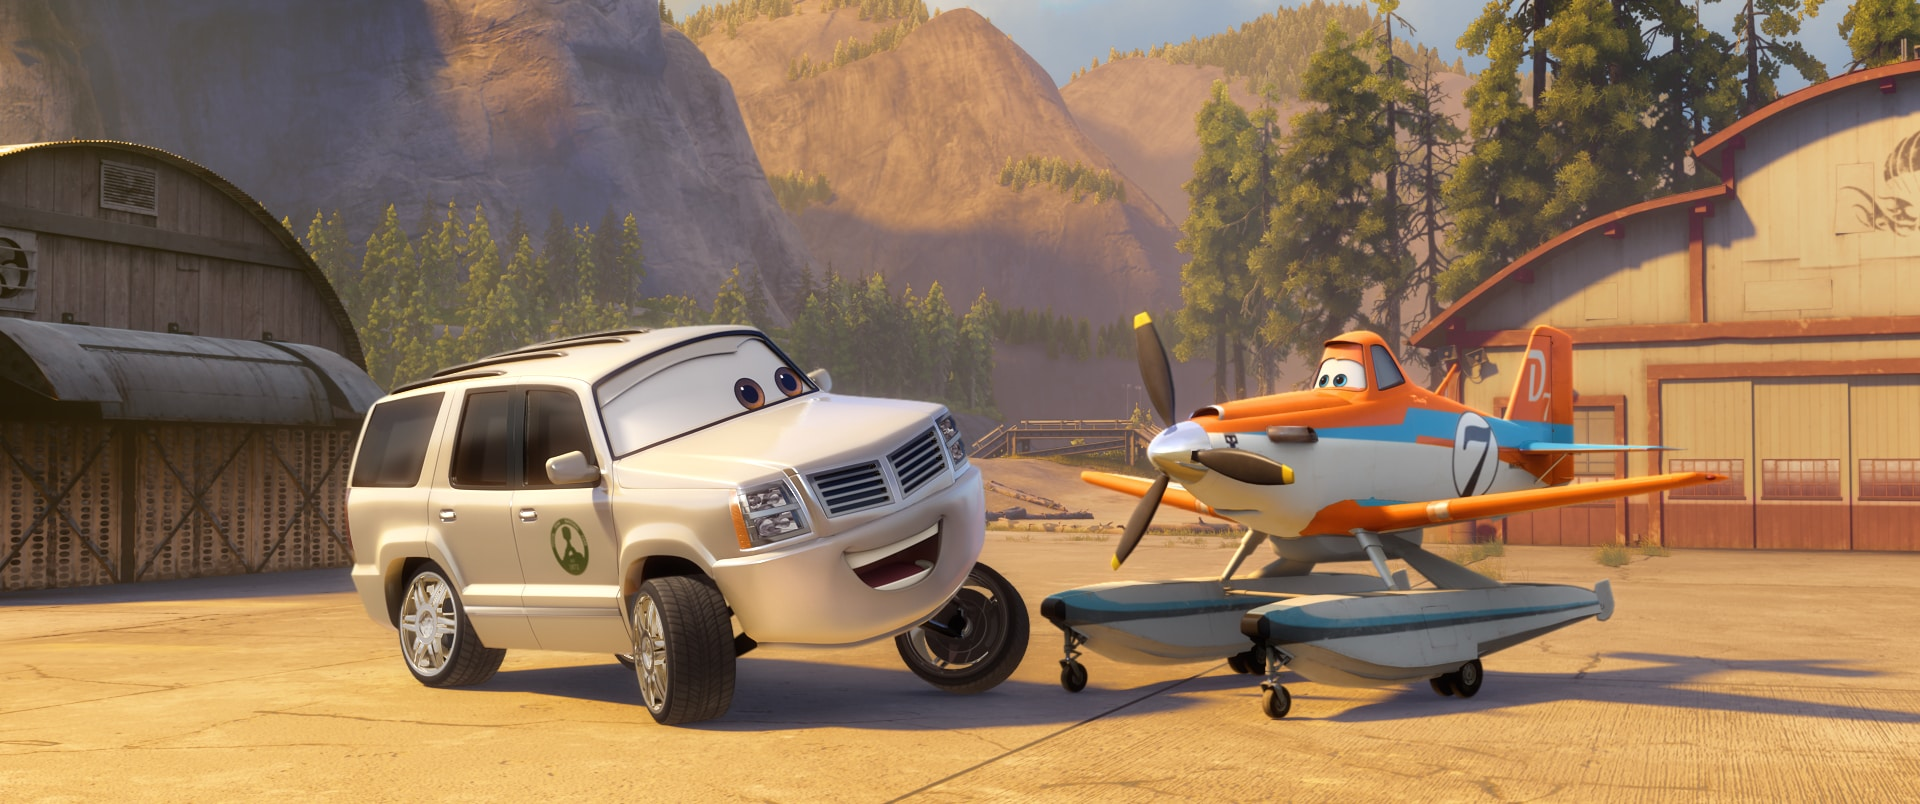 """Cad Spinner (John Michael Higgins) and Dusty (Dane Cook) in """"Planes: Fire & Rescue"""""""